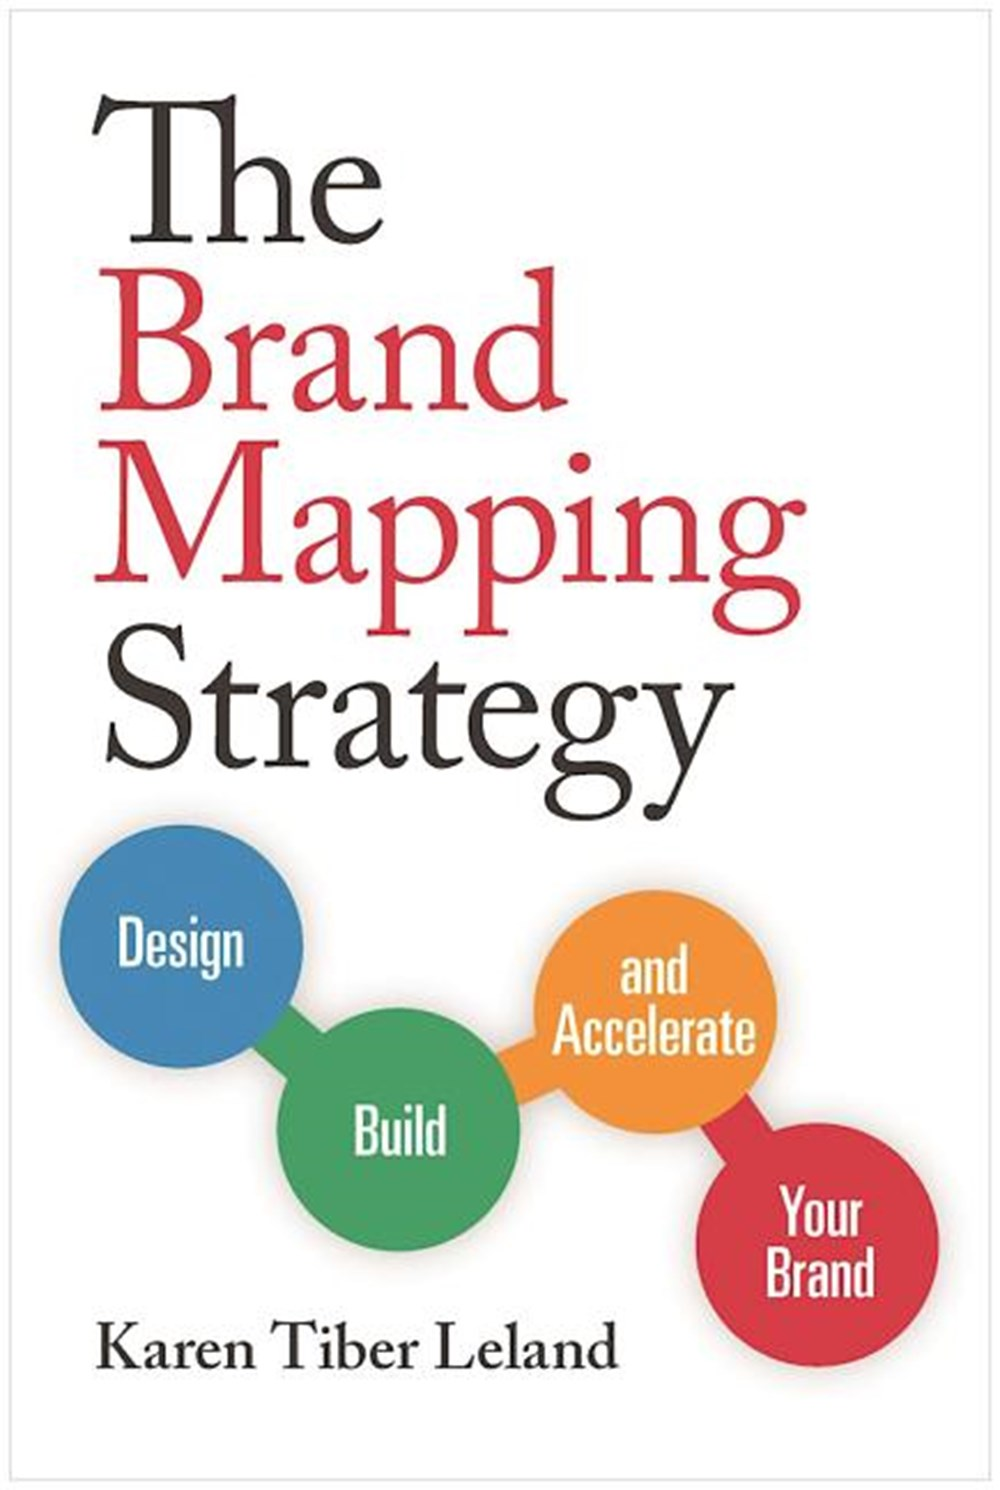 Brand Mapping Strategy Design, Build, and Accelerate Your Brand